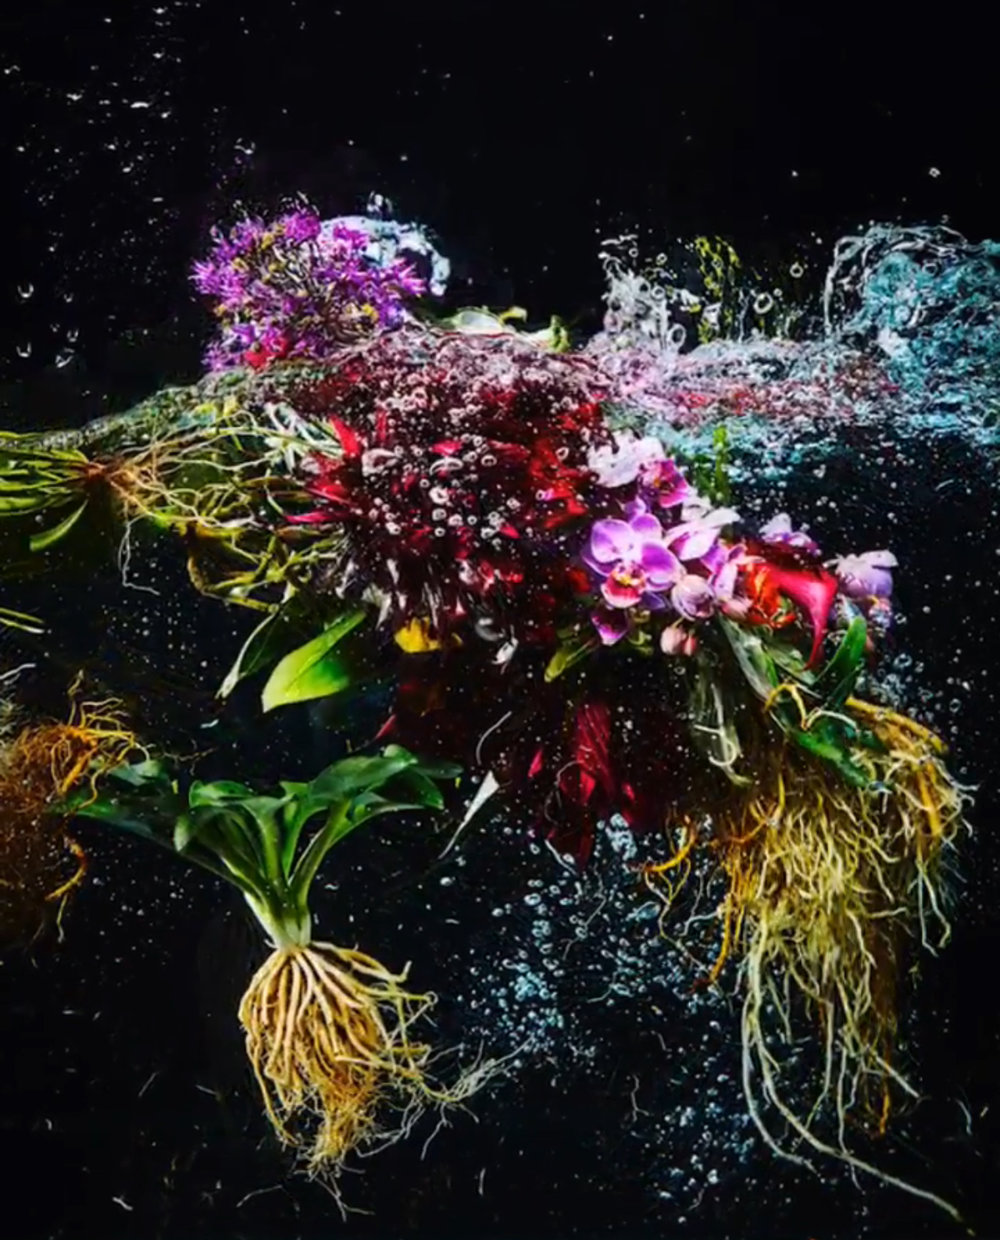 Still image from one of Azuma Makoto's spectacular flower videos.